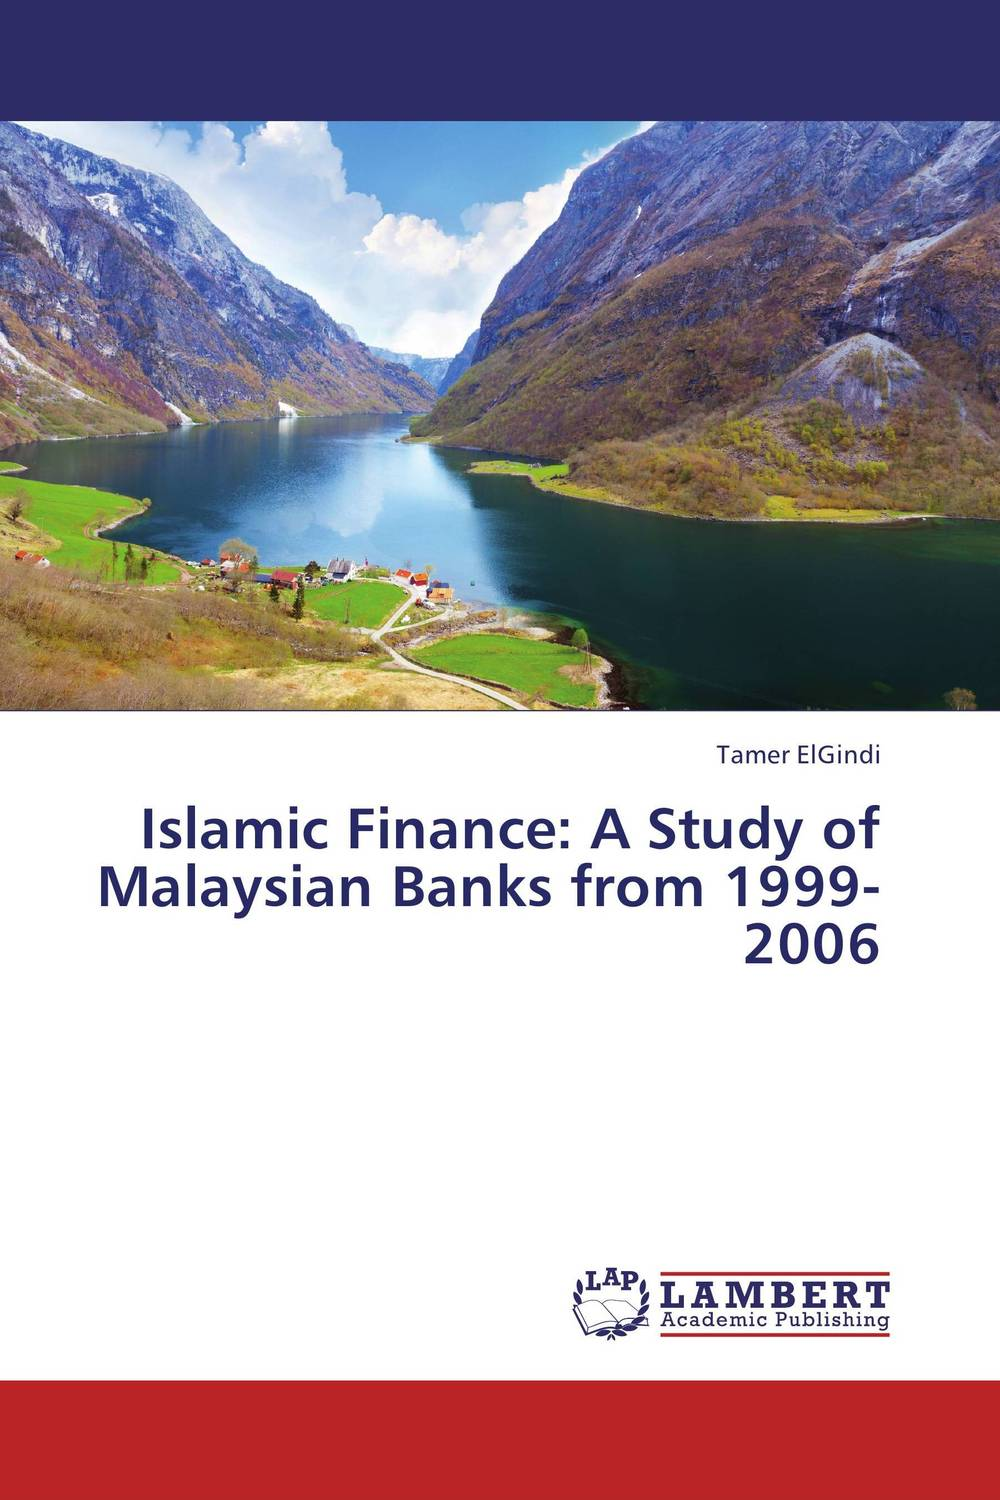 Islamic Finance: A Study of Malaysian Banks from 1999-2006 rifki ismal islamic banking in indonesia new perspectives on monetary and financial issues